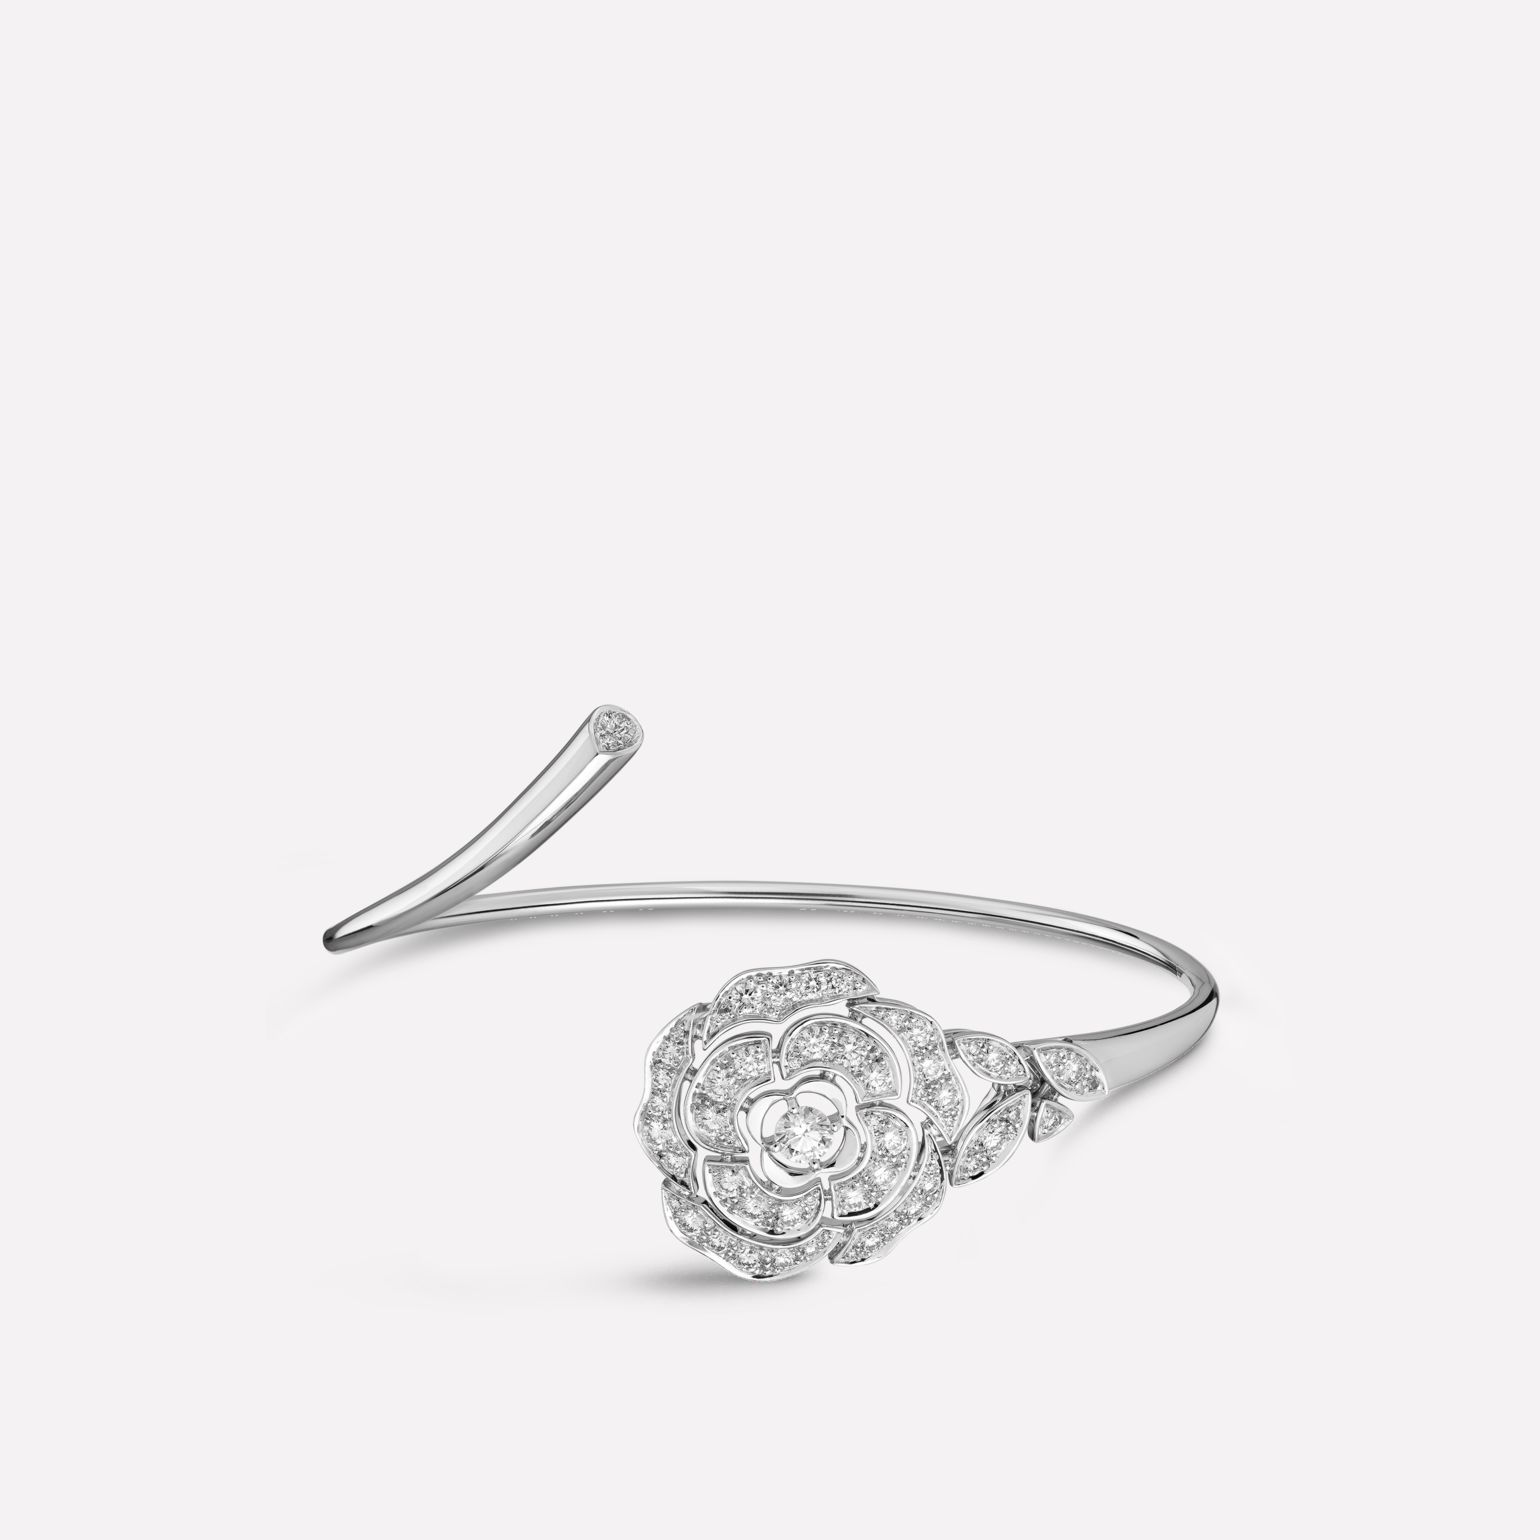 Bouton de Camélia bracelet 18K white gold, diamonds